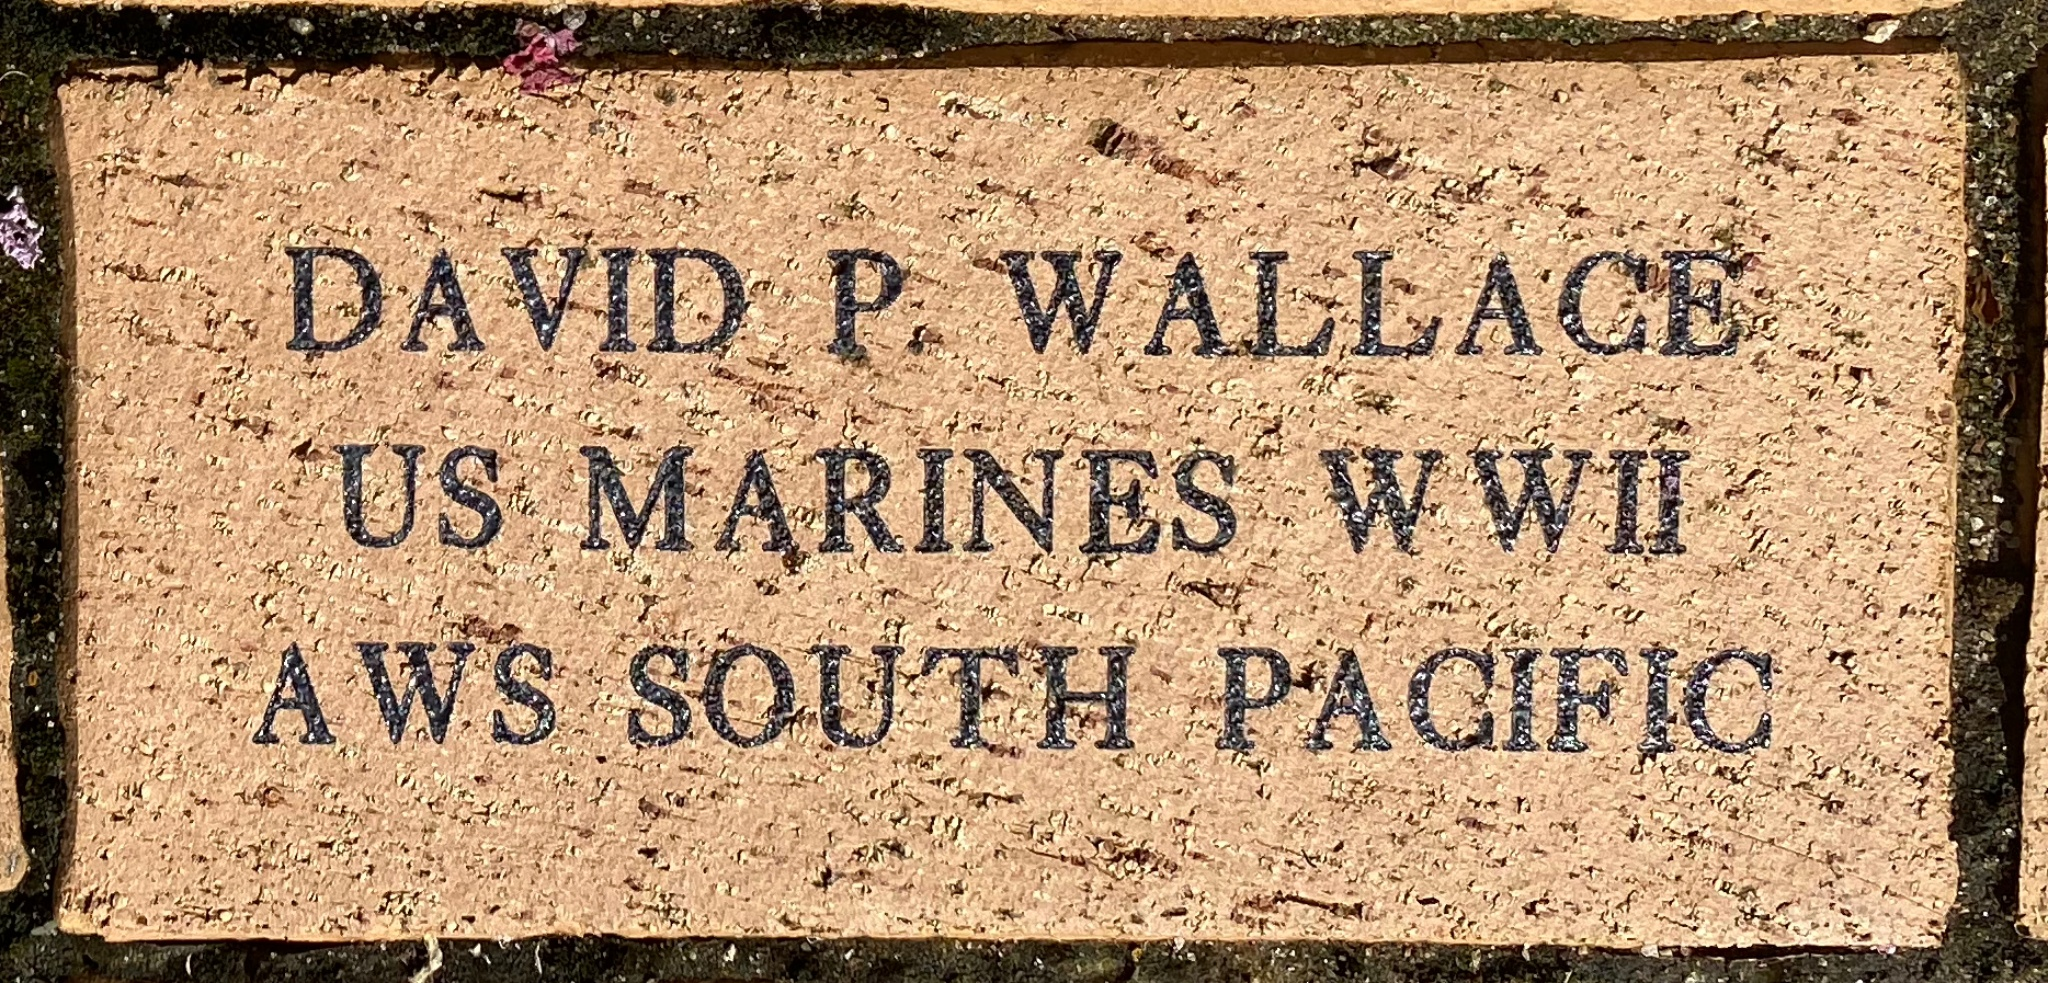 DAVID P WALLACE US MARINES WWII AWS SOUTH PACIFIC